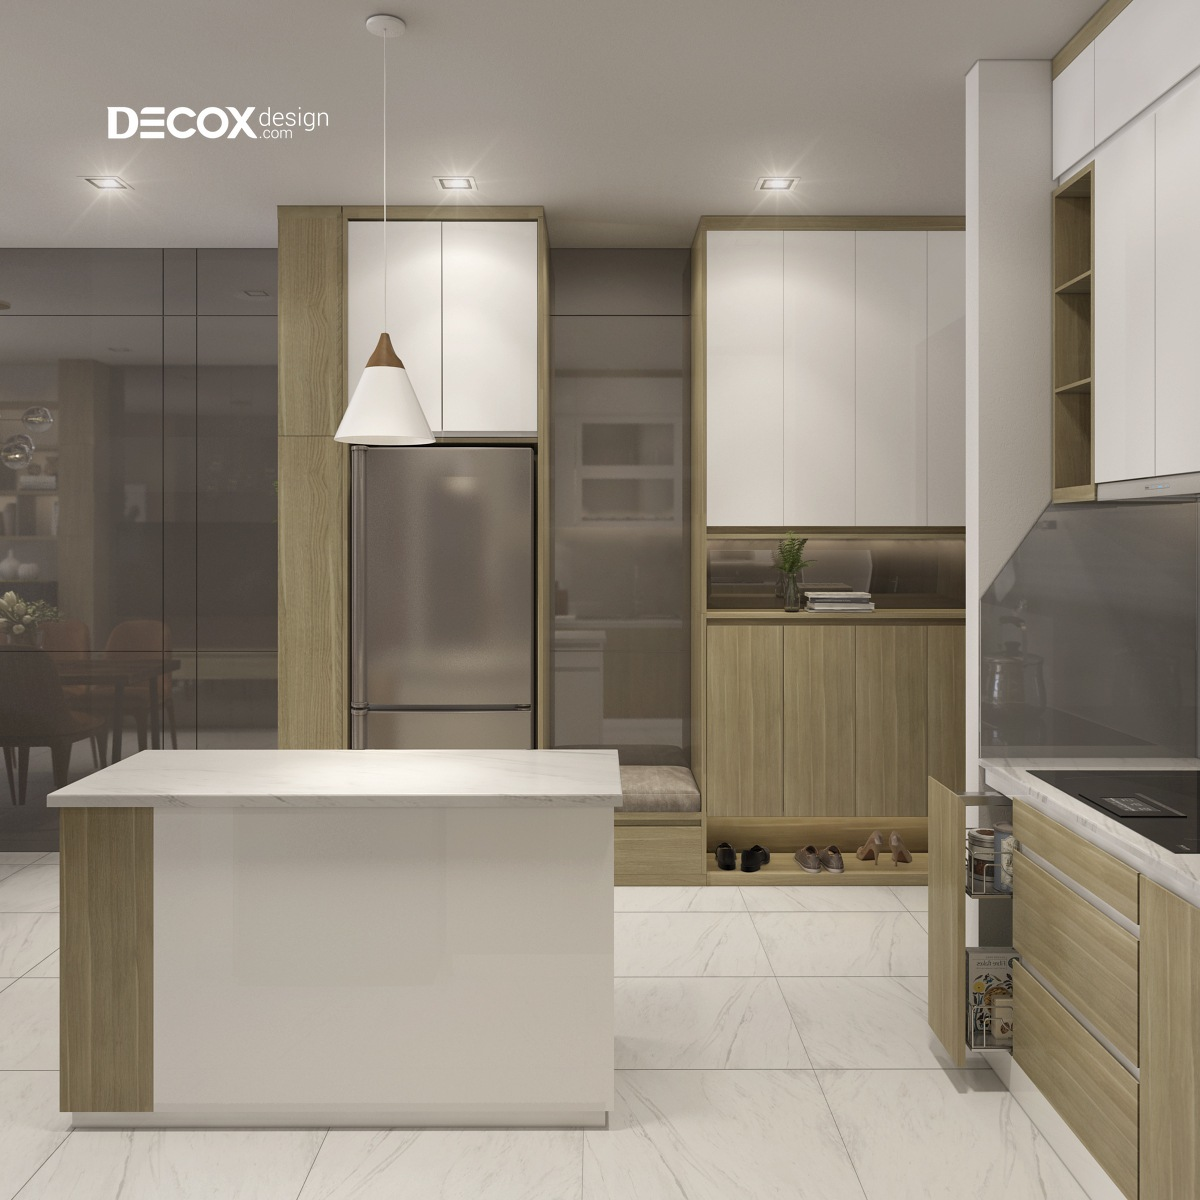 thiet-ke-noi-that-saigon-mia-phong-bep-05-decox-design